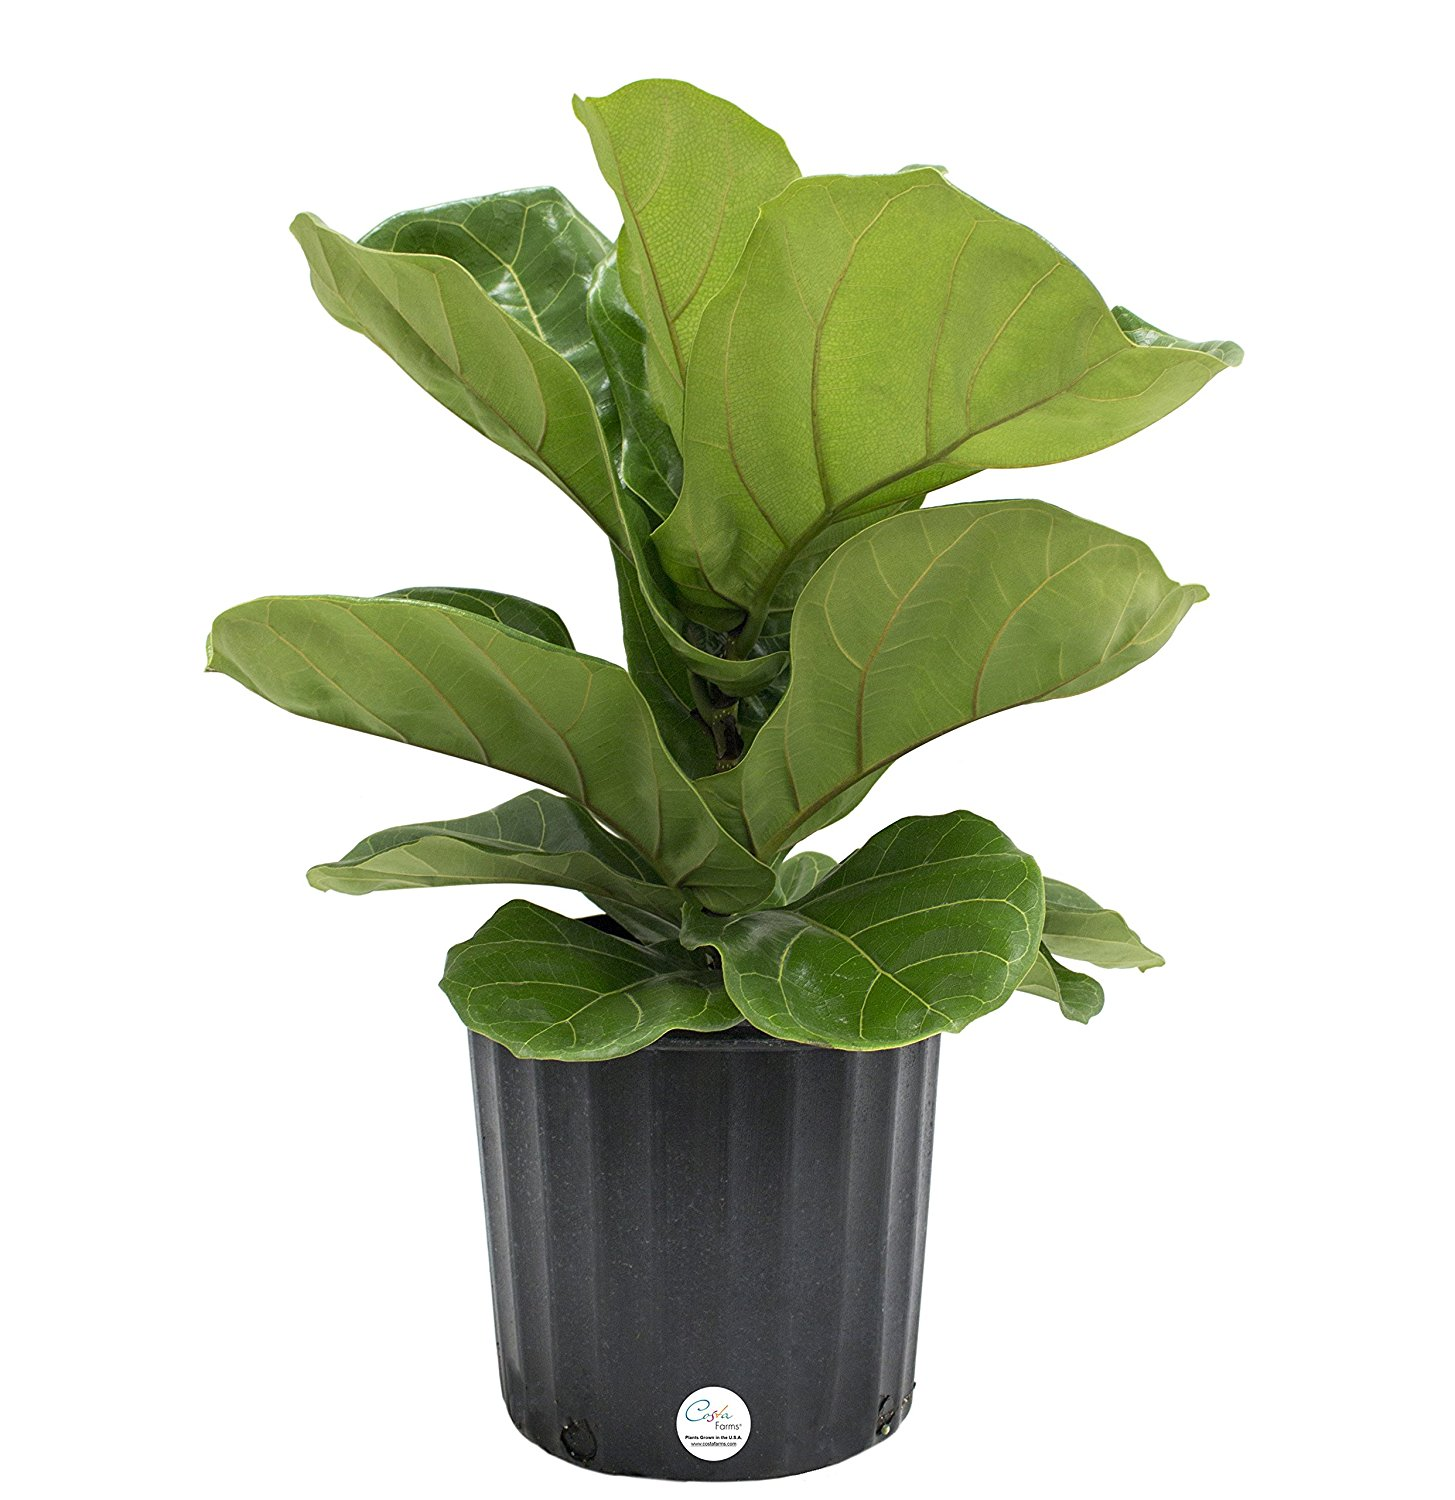 Where To Buy Indoor Plants Online Indoor Plants You Can Buy Online Our Favorite Amazon Shop